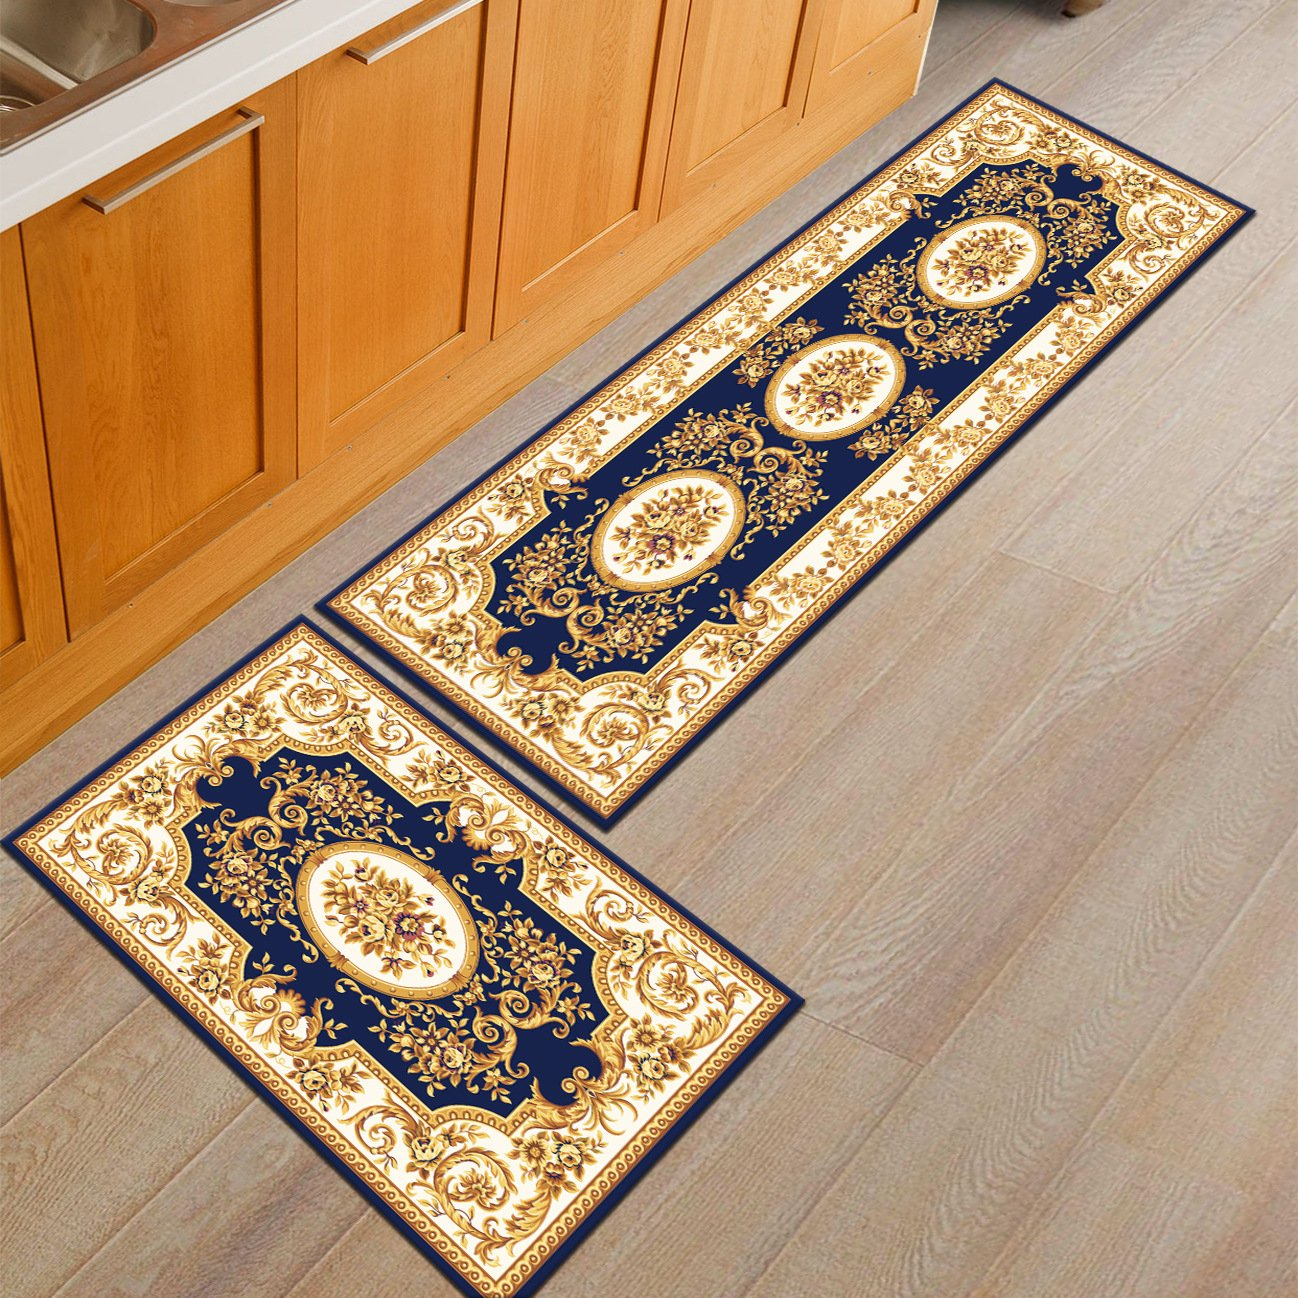 Kitchen Rugs, CAMAL 2 Pieces European Style Printed Kitchen Carpet Rubber Backing Doormat Runner Rug Set (16x24+16x48, Color 01)